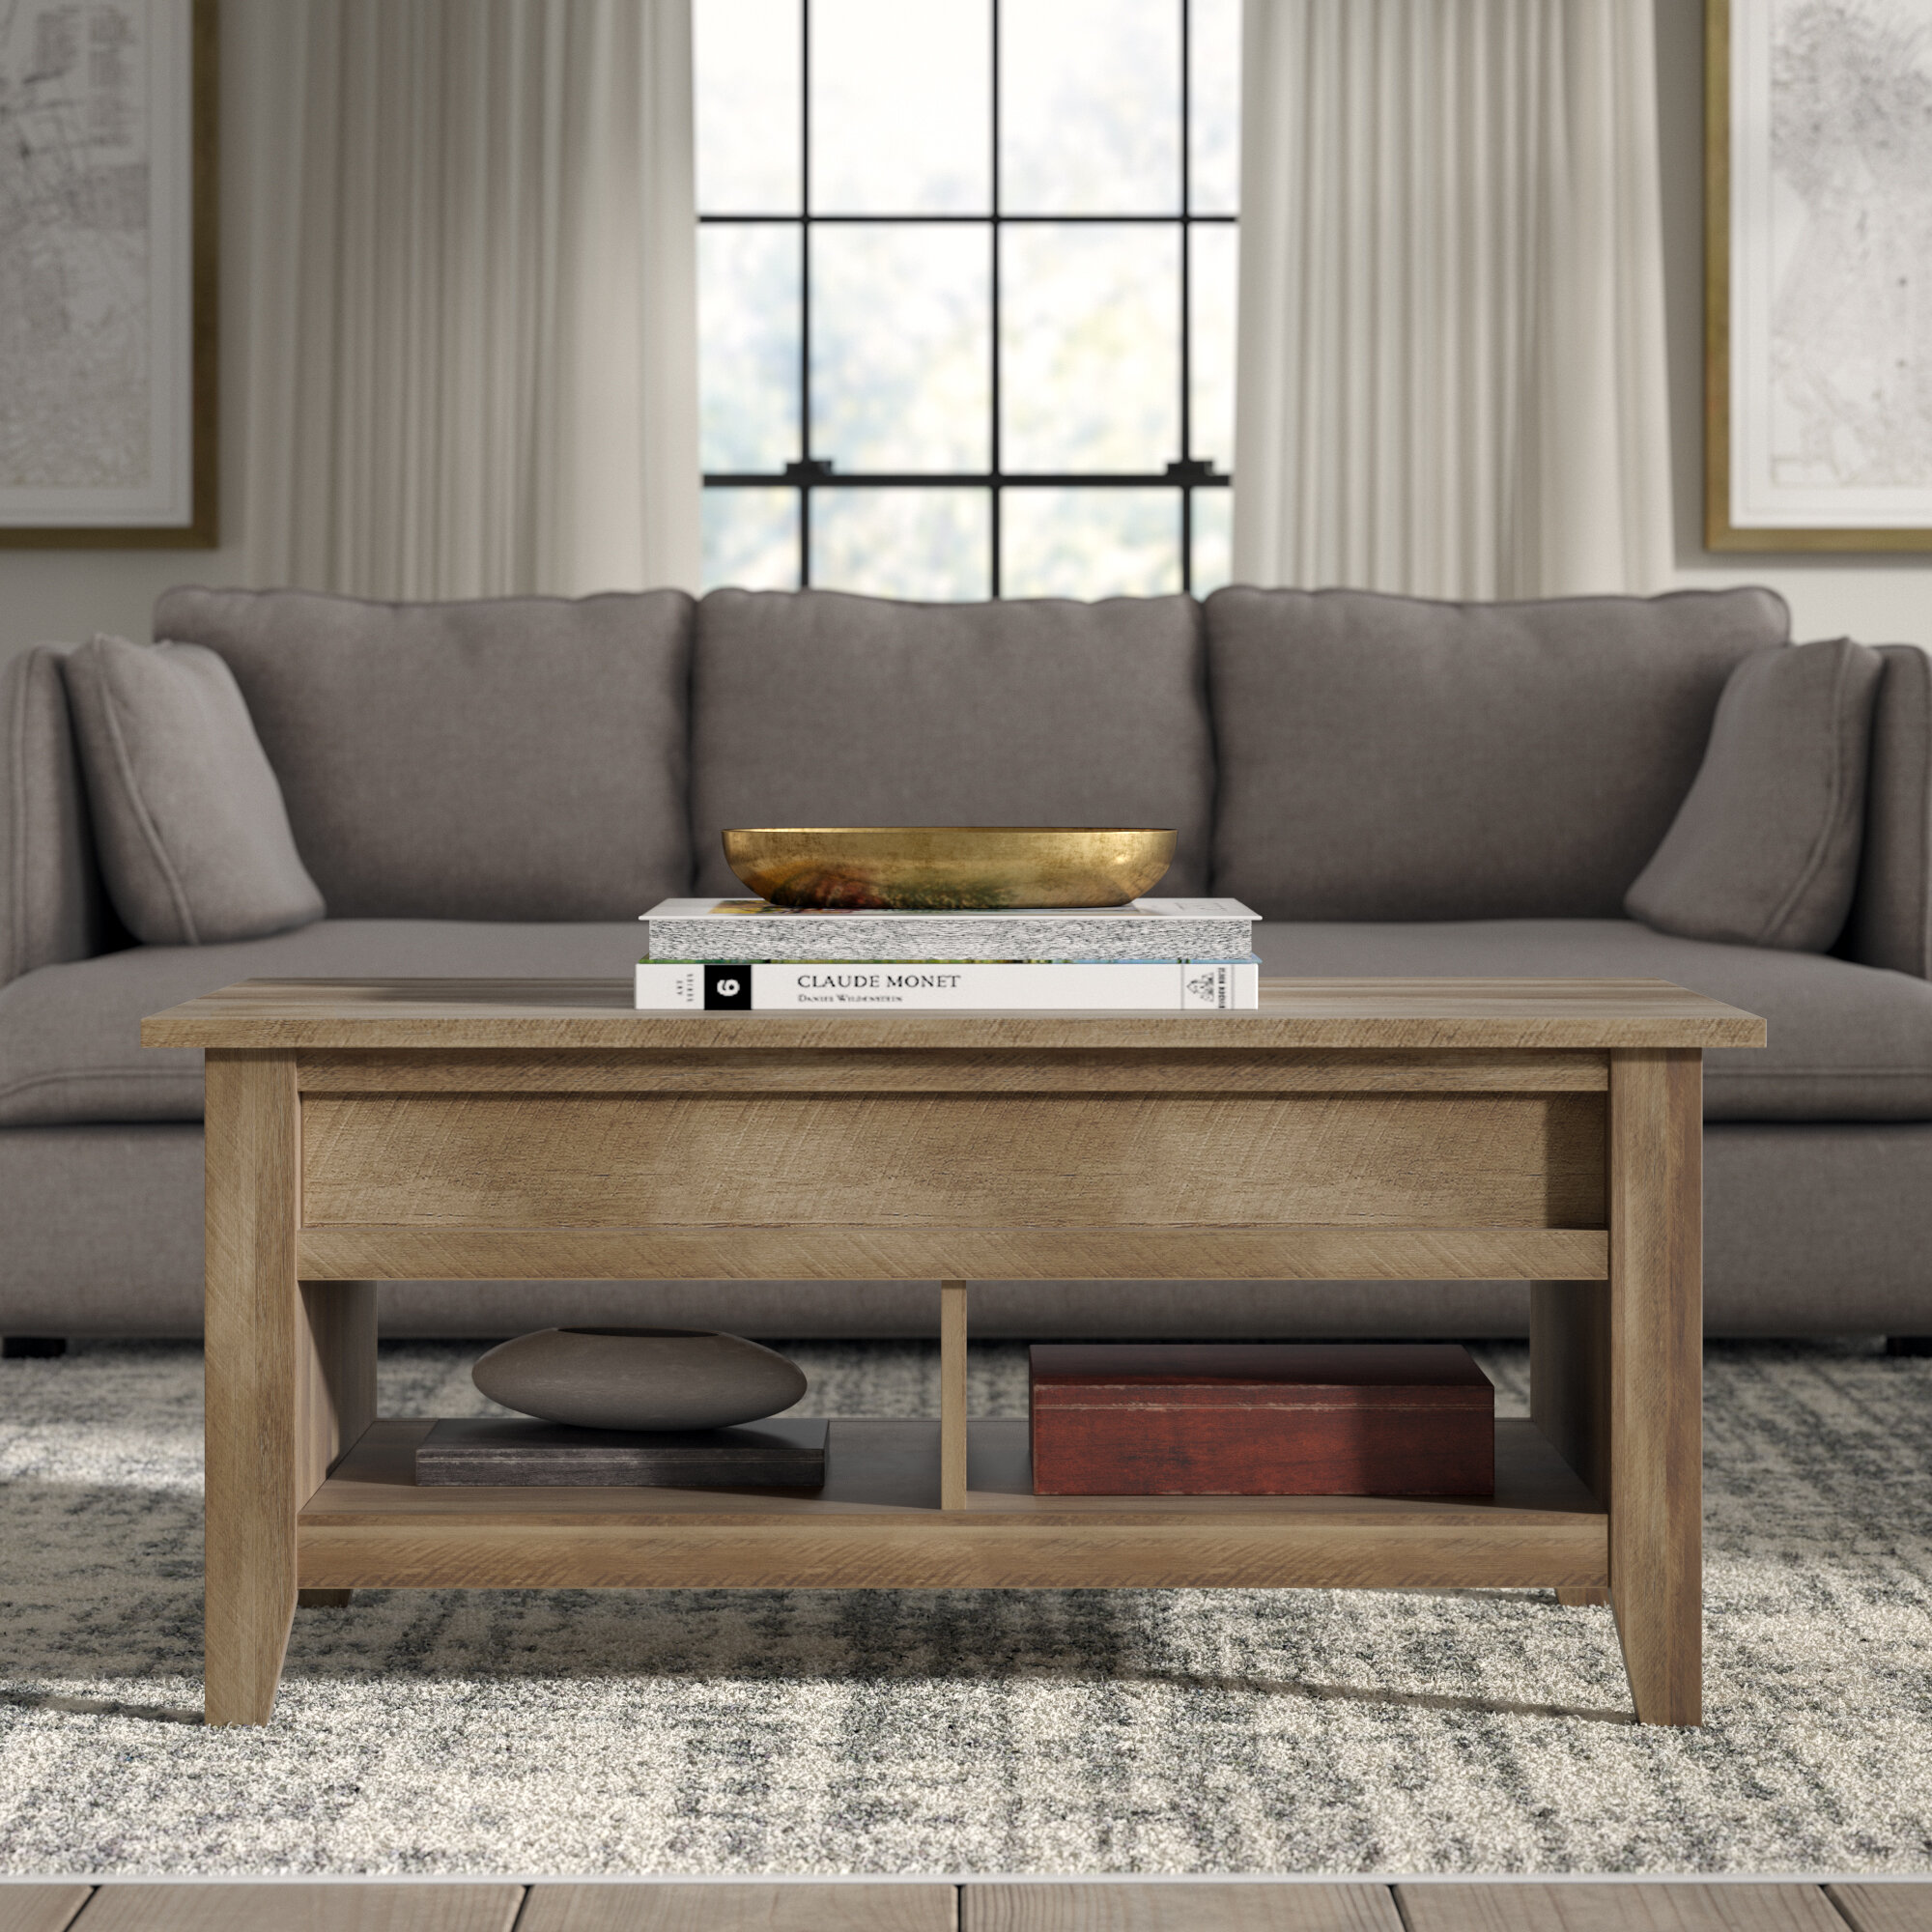 Greyleigh Riddleville Lift Top Extendable 4 Legs Coffee Table With Storage Reviews Wayfair [ 2000 x 2000 Pixel ]